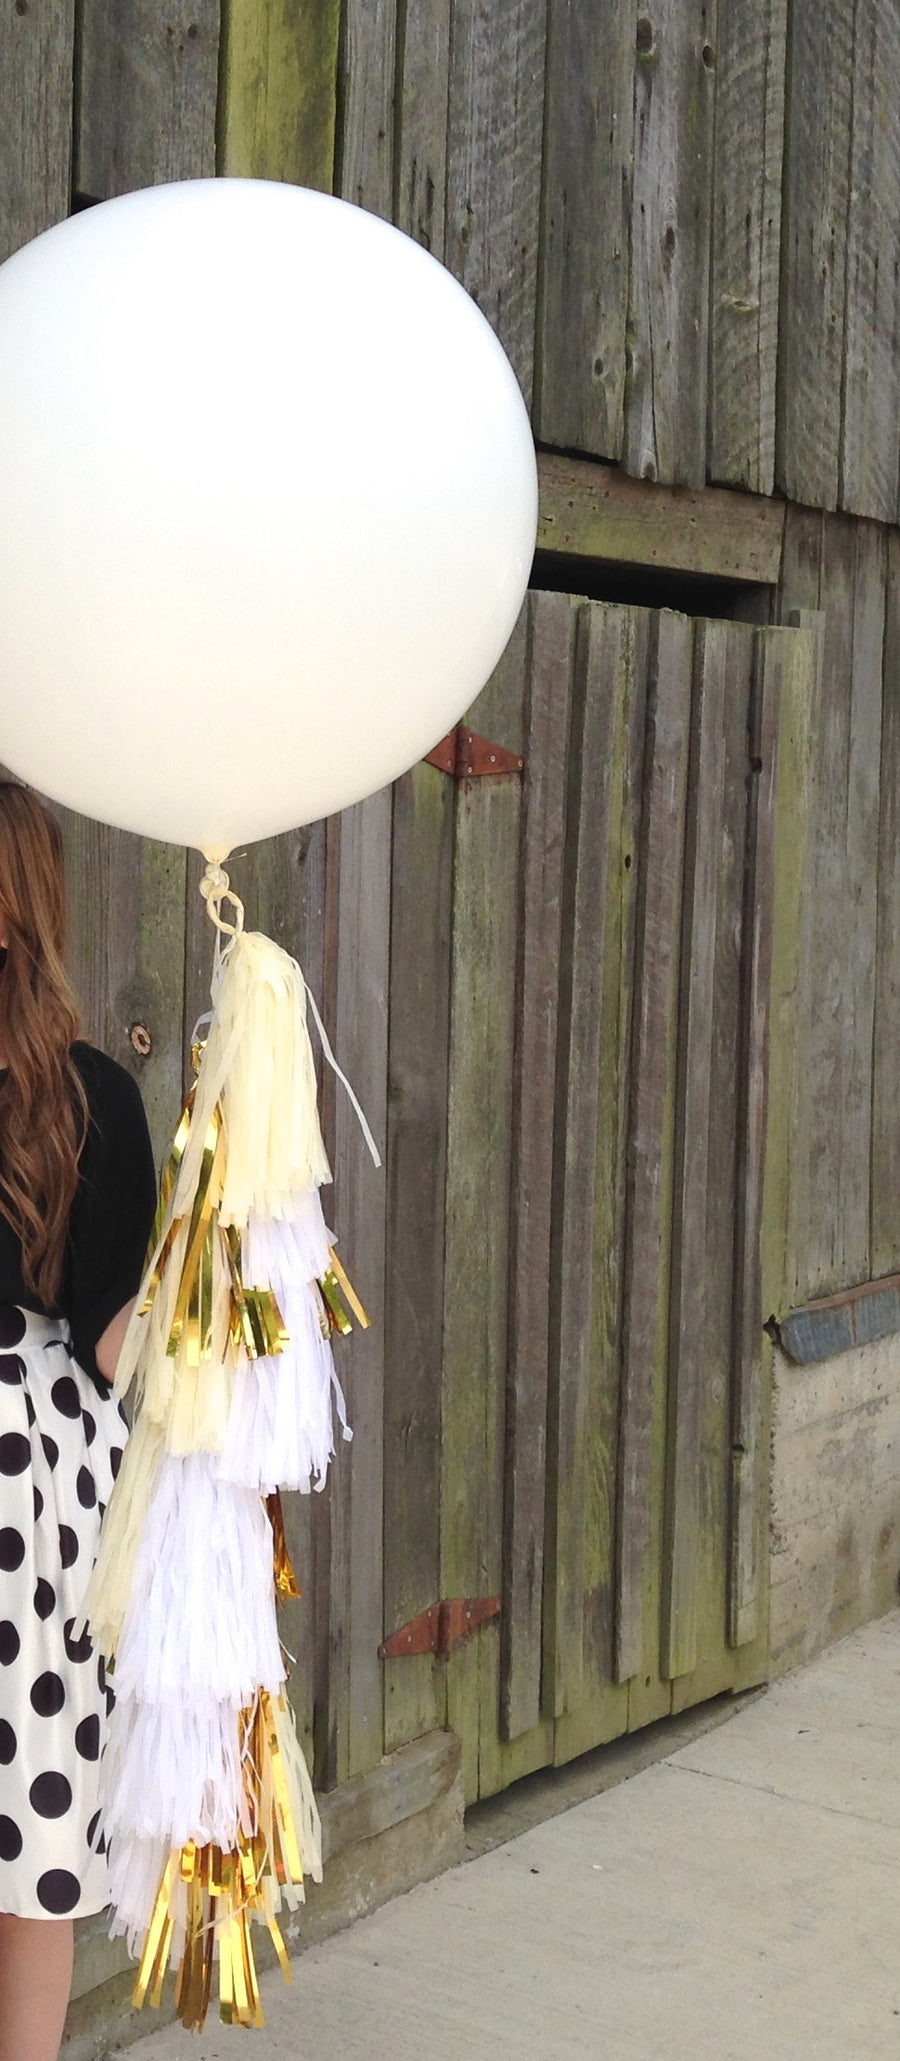 Britney, Wedding White Jumbo Balloon Tissue Tassel Tail Fringe: White, Metallic Gold, Ivory